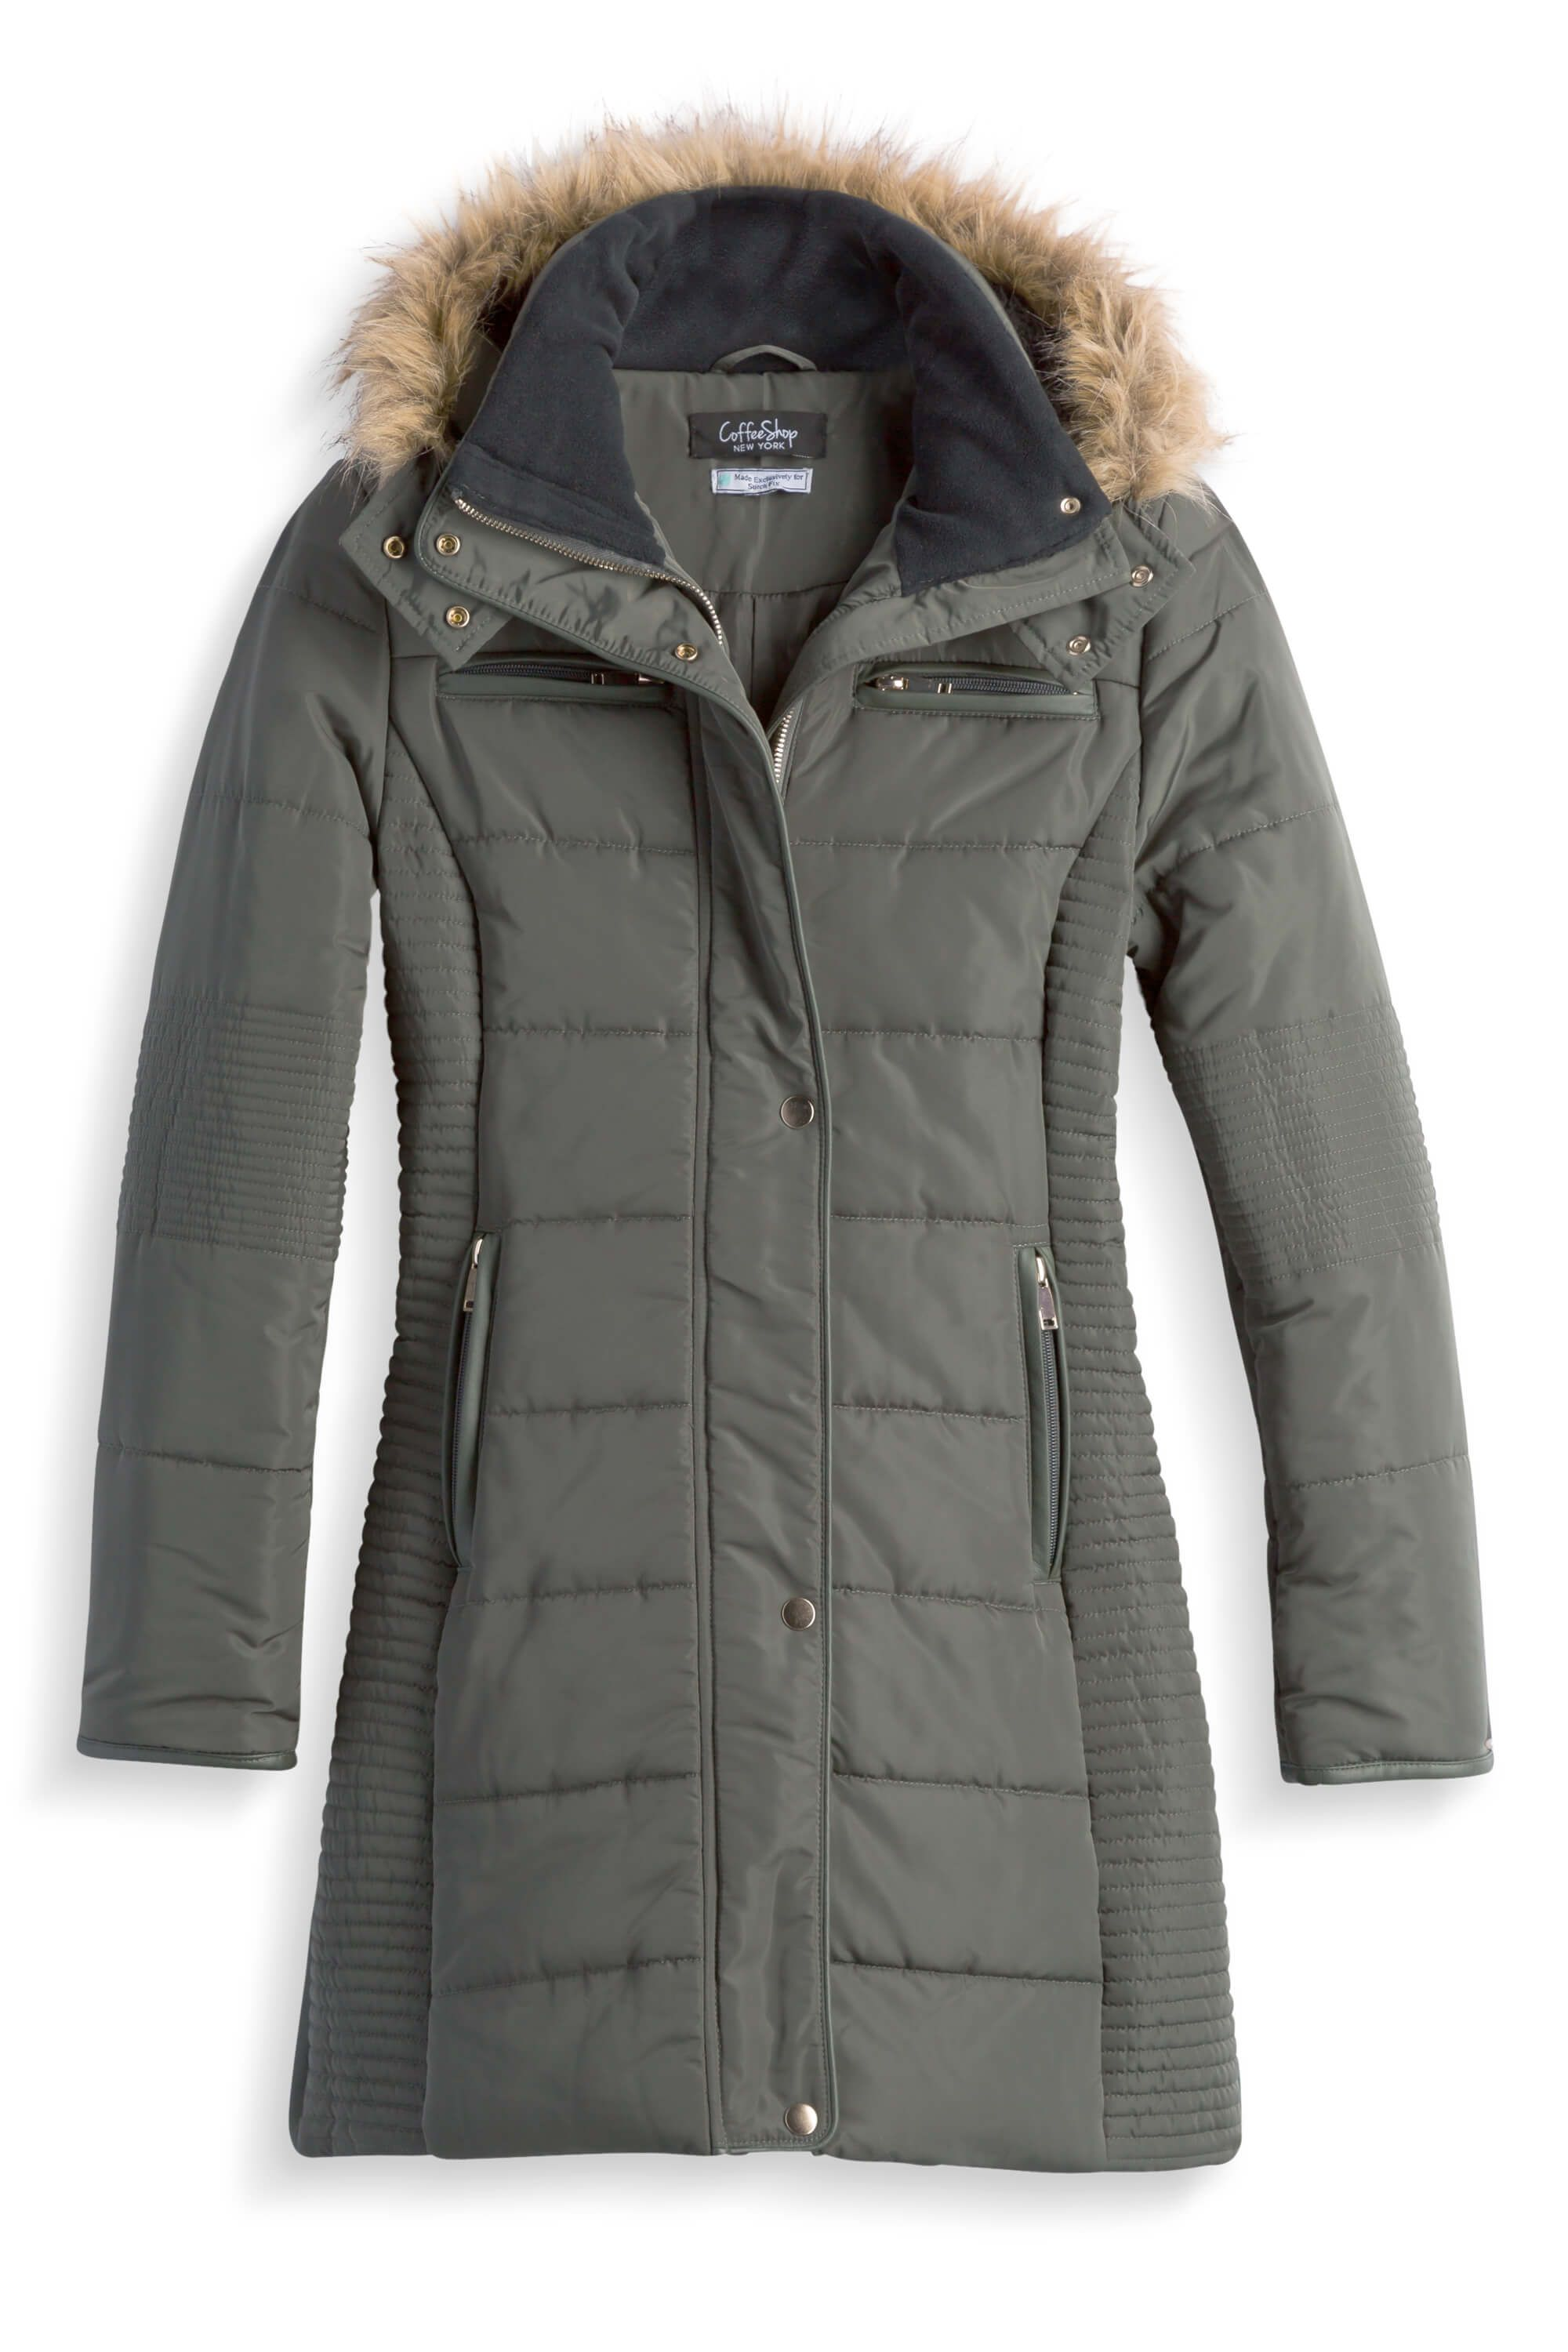 563165184a39d1 This Just In: Puffer Coats & Vests   Stitch Fix Tips & Outfit ...